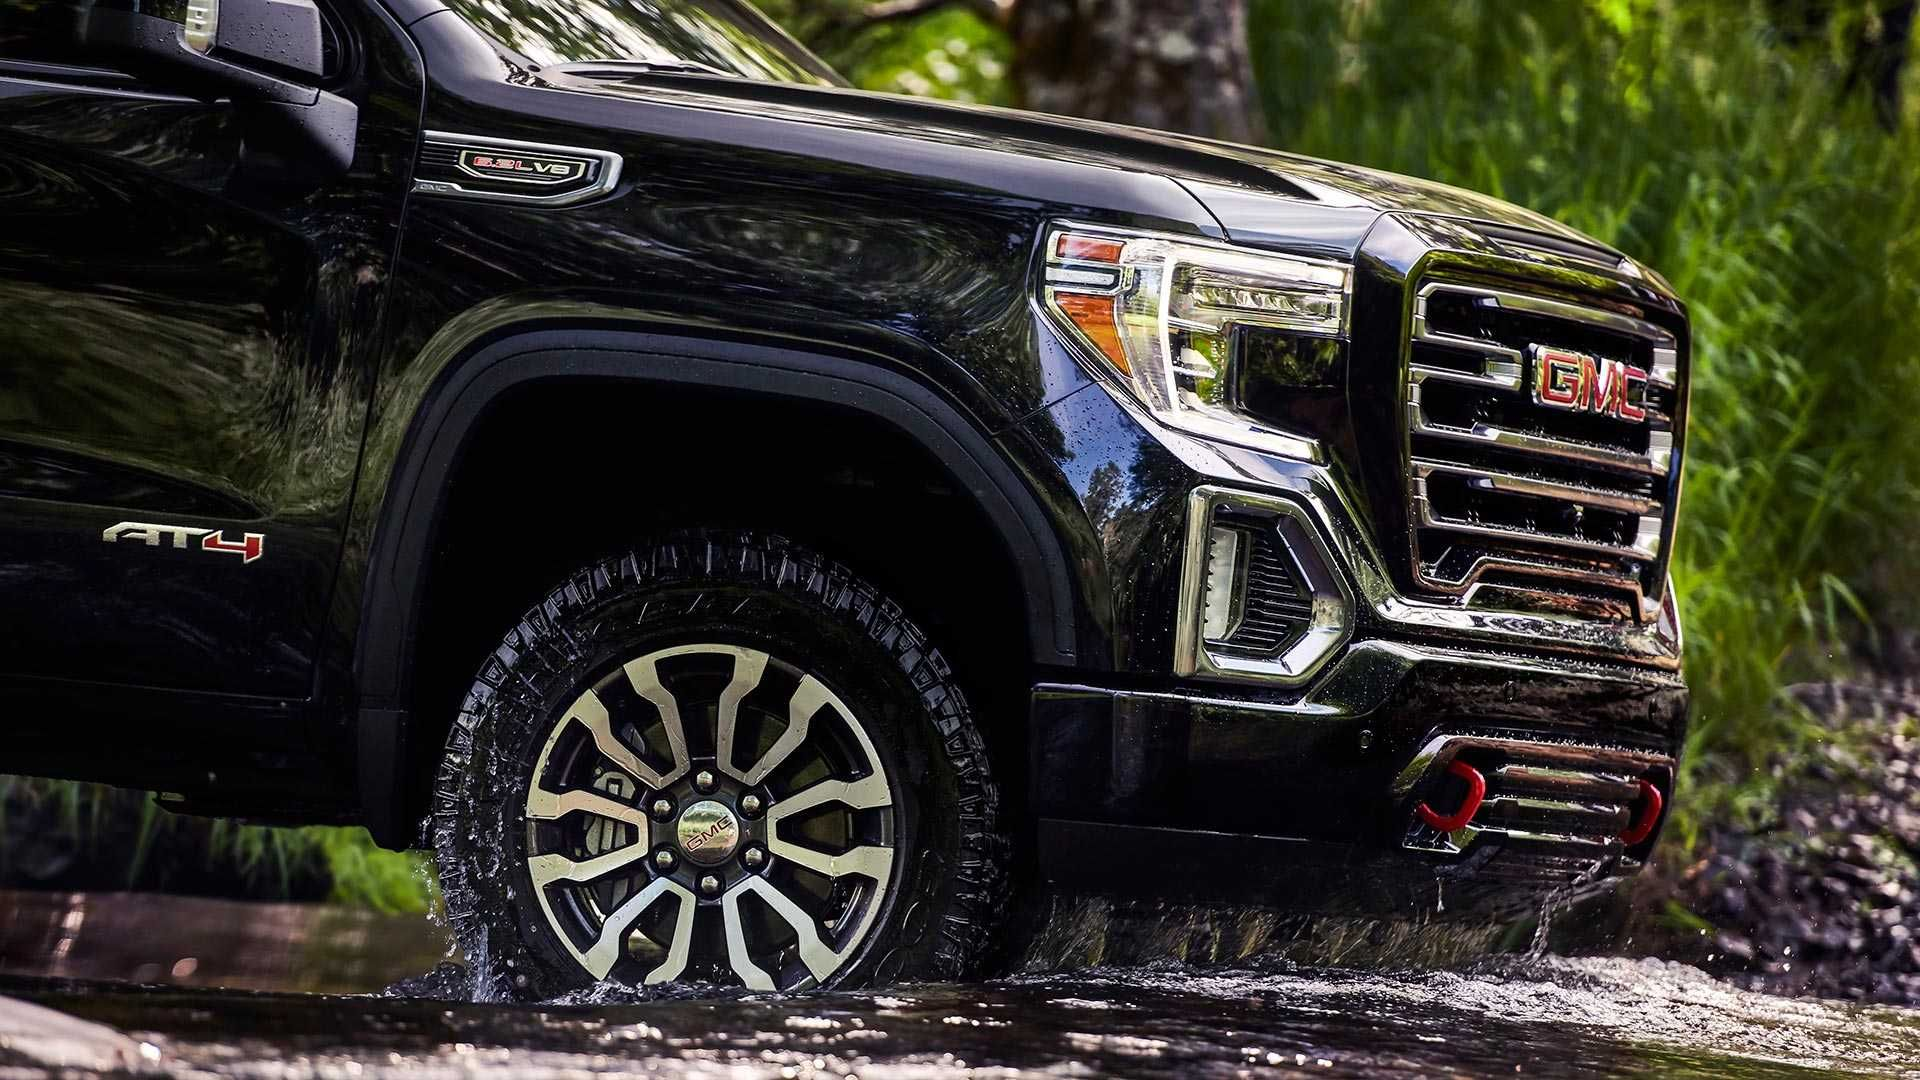 The New Off Road Performance Package For The 2019 Gmc Sierra At4 Amps The Truck S 6 2 Liter V8 With A Performance Air Intake And Gmc Sierra Gmc Gmc Sierra 1500